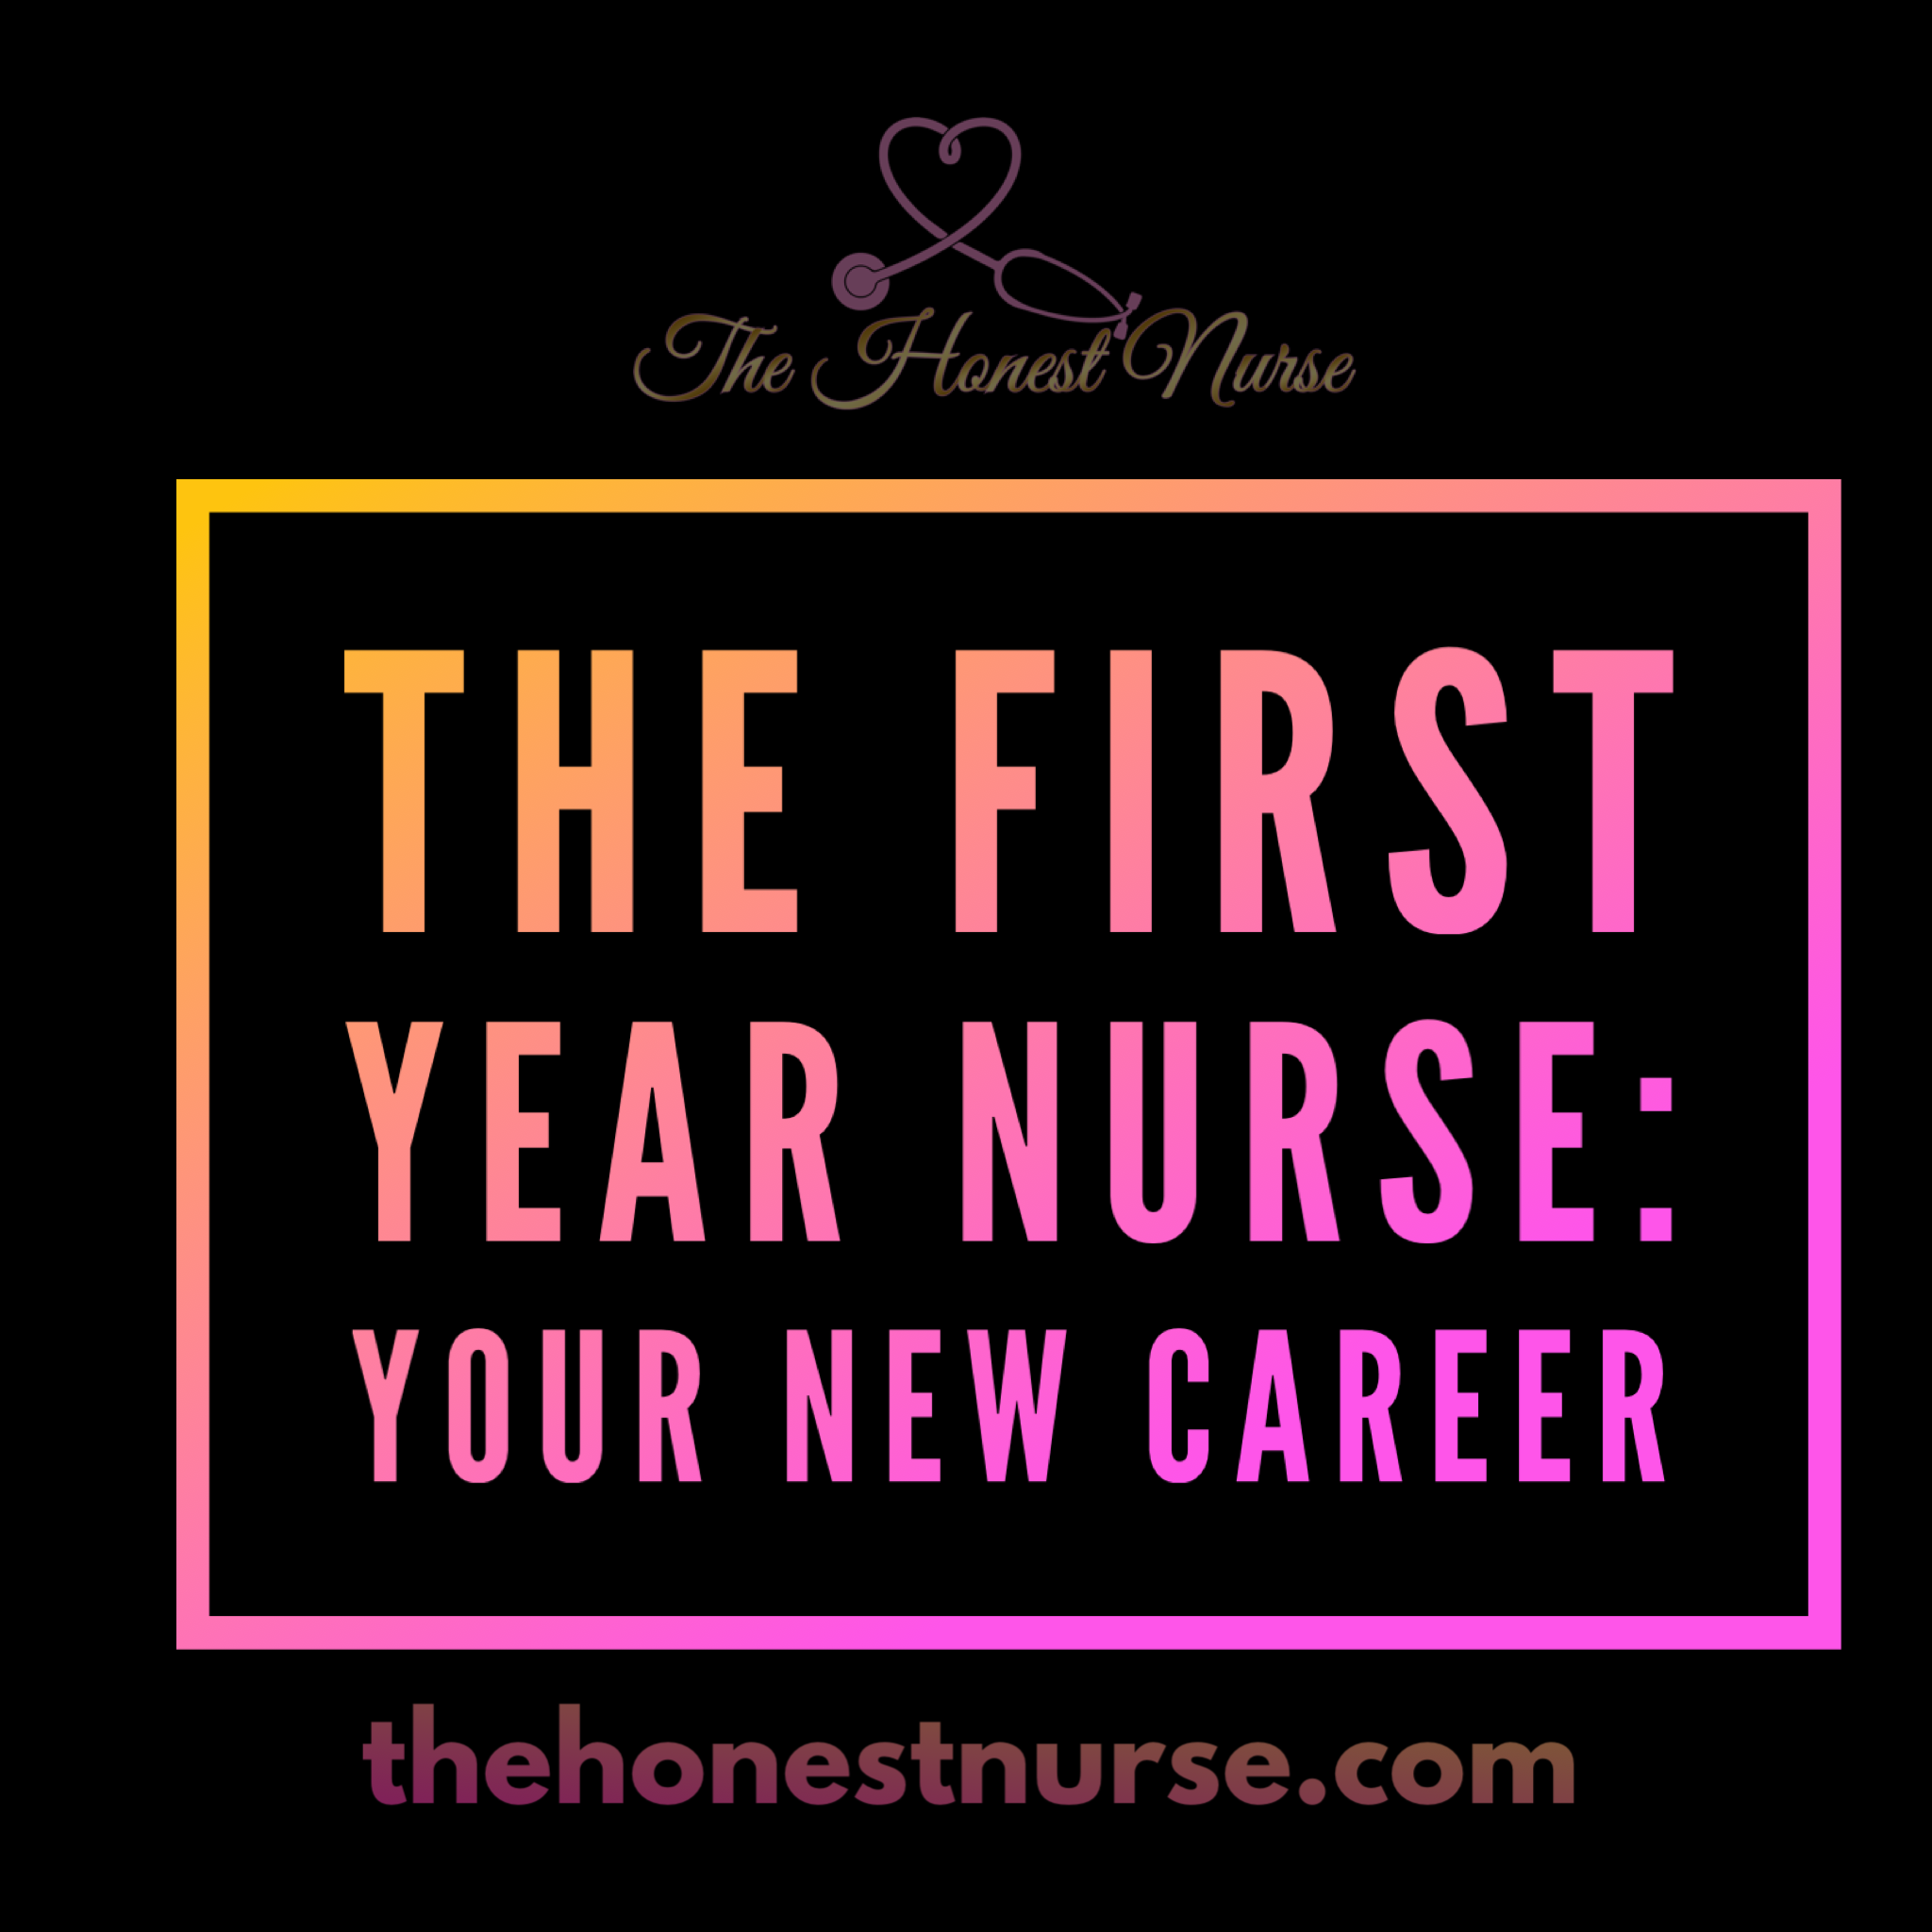 11. The 1st year nurse: your new career - What is the difference between a Nurse Externship and a Nurse Internship? What will you need your first day on the job? How will you ace that interview? How do you know it will be a good fit? These and more important tips and advice regarding your first job as a new nurse graduate.